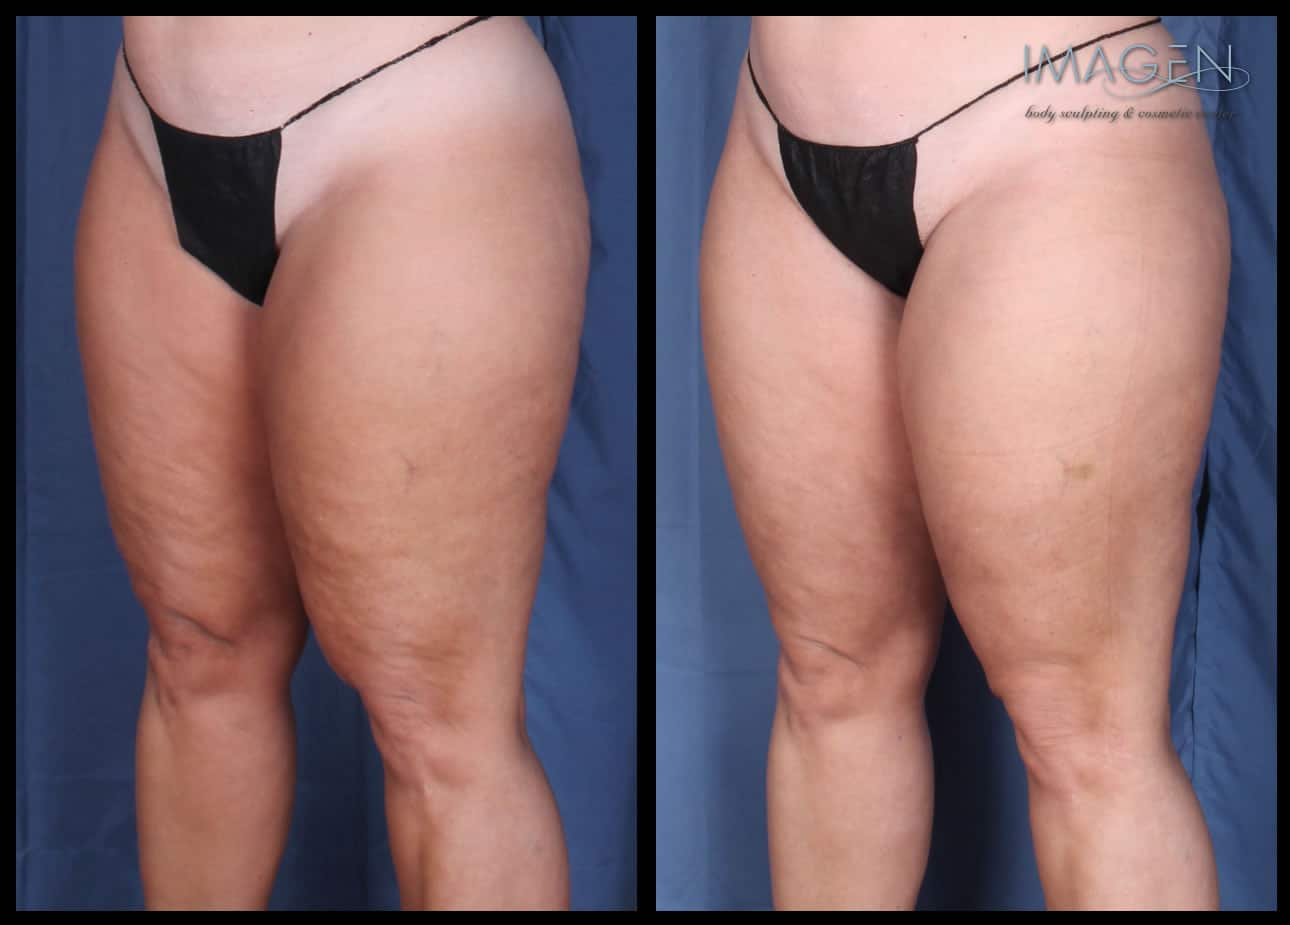 Cellulite Treatment to the Legs